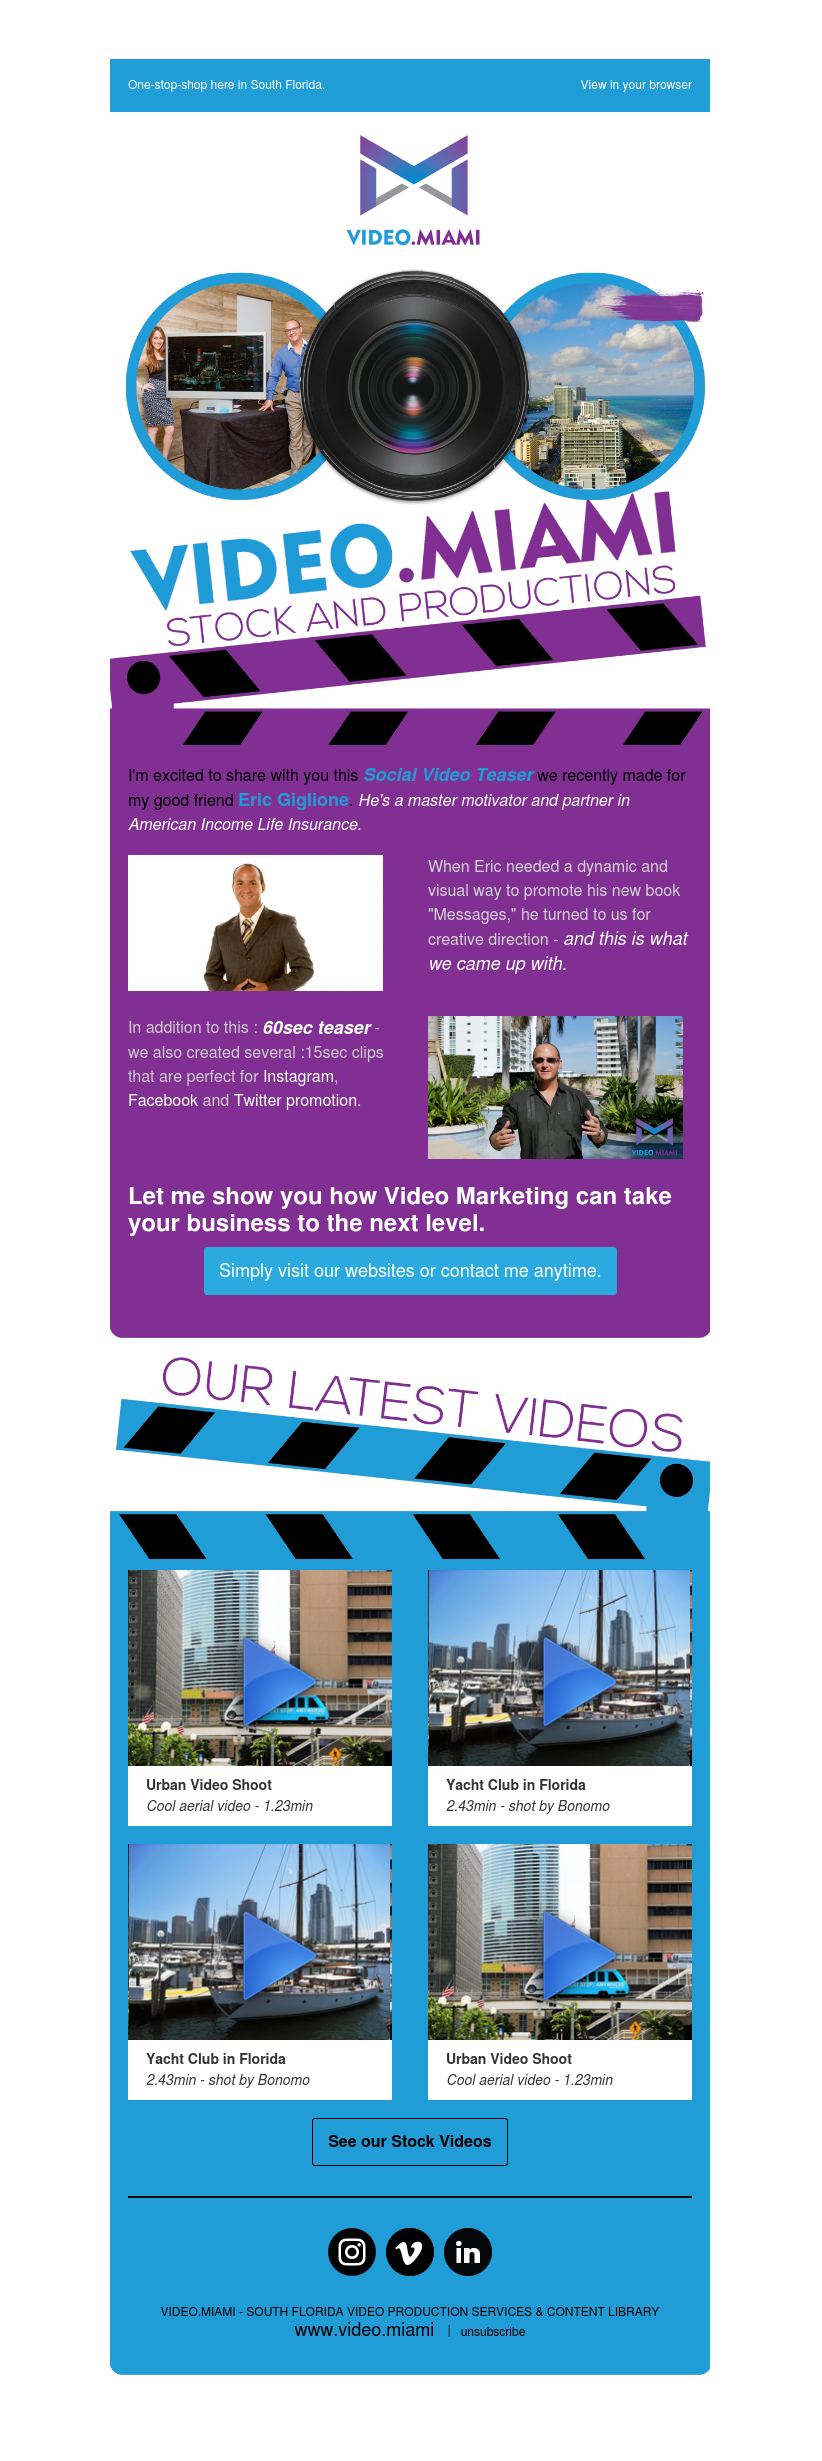 Image of an newsletter with the text Video Miami